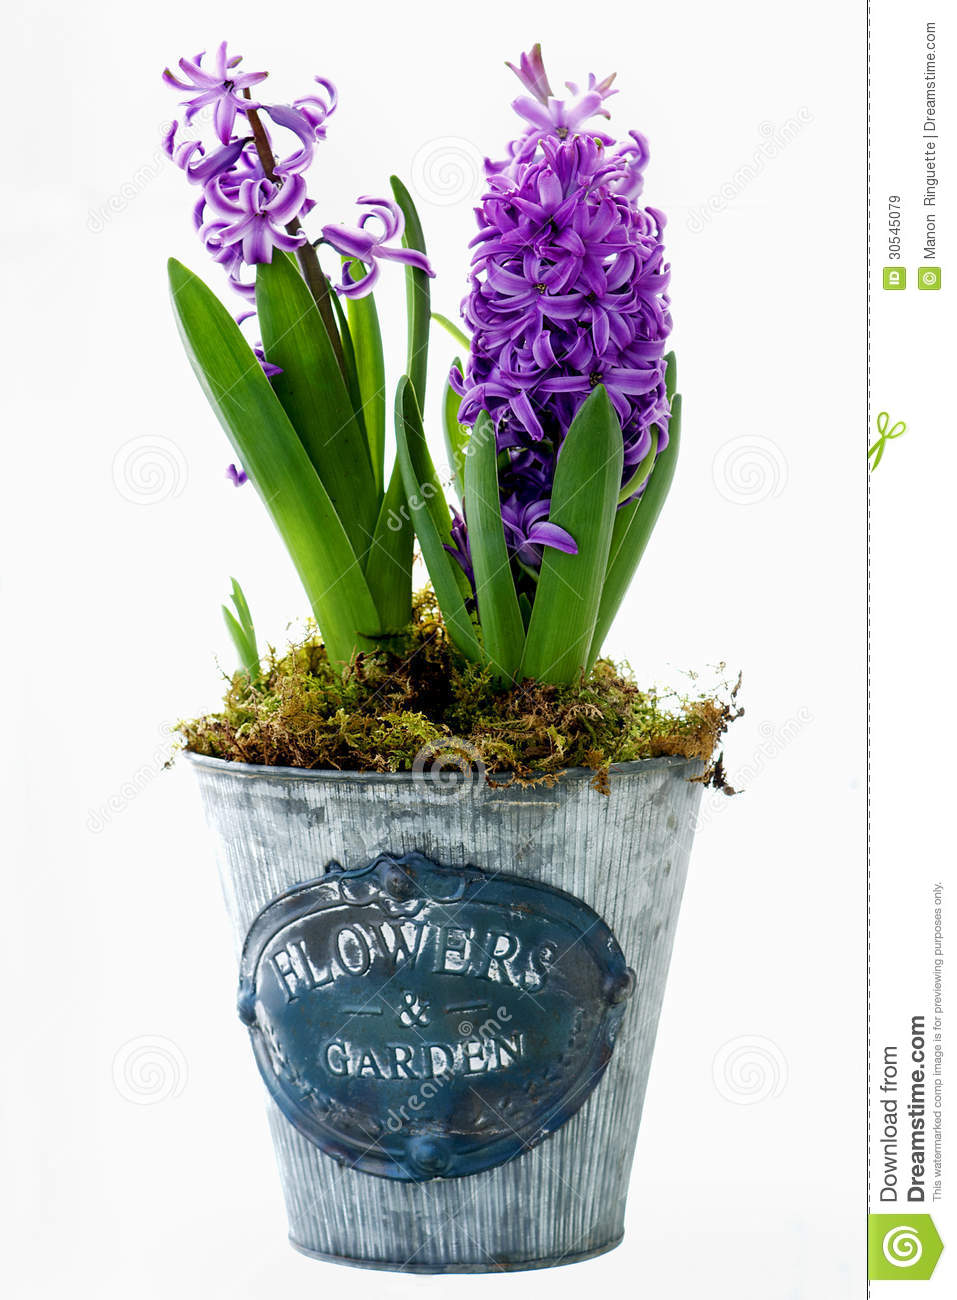 Potted purple hyacinths royalty free stock images image 30545079 - Planting hyacinths pots ...